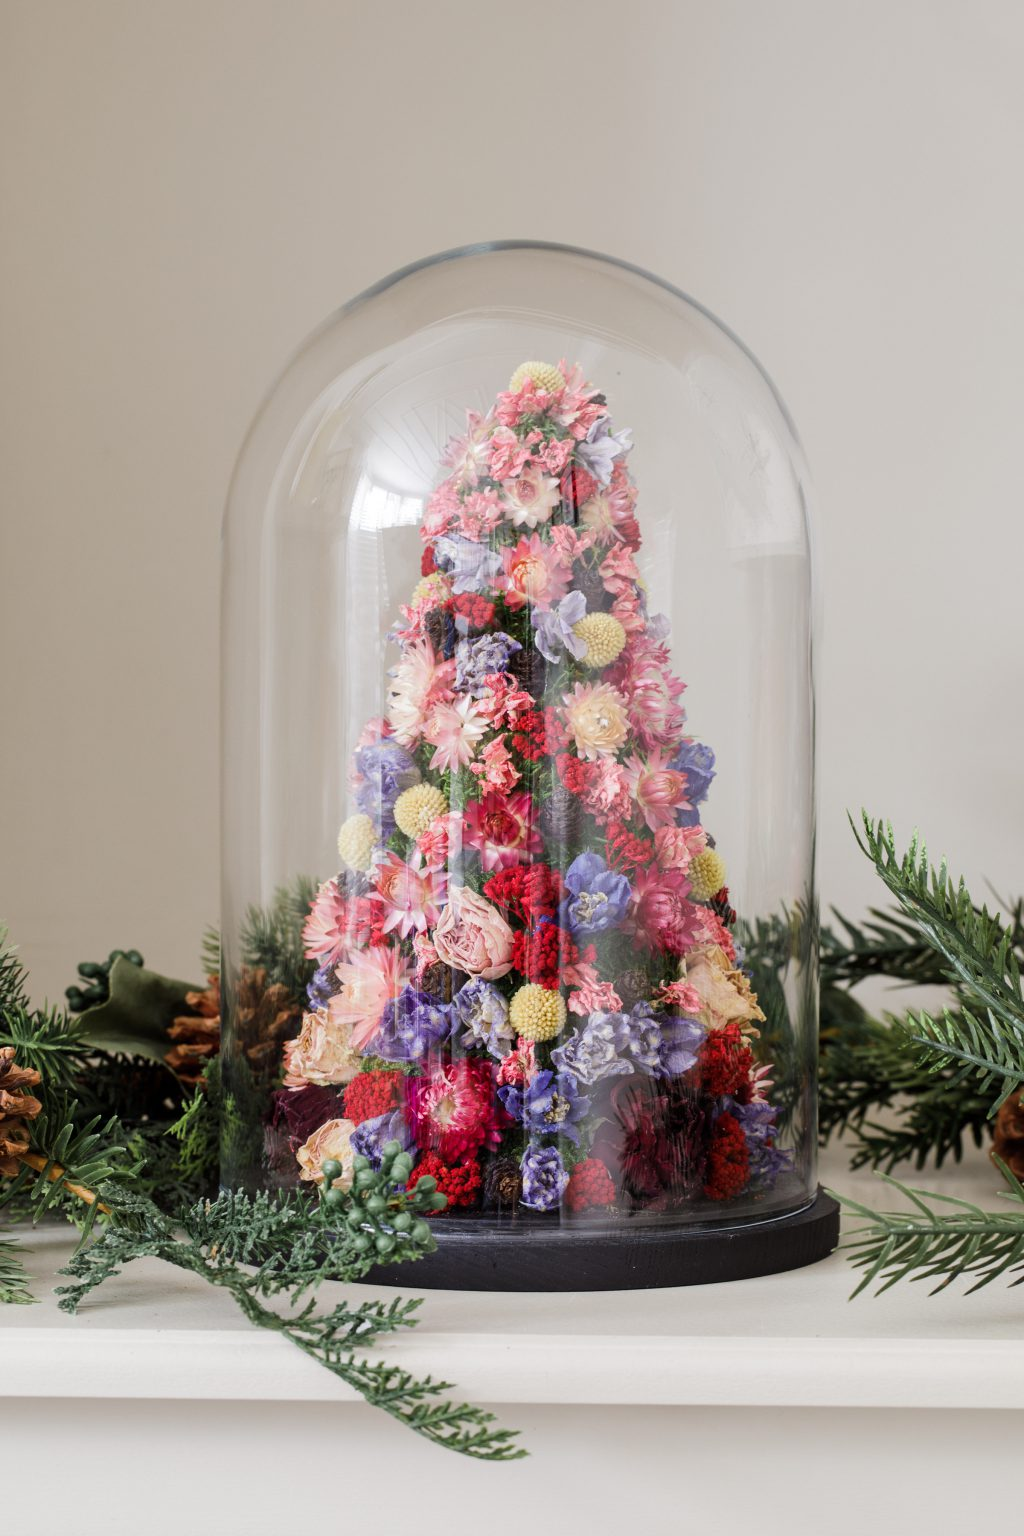 Indeco-Flower-Dome-Christmas-Tree-Merry- Berry 2020-06